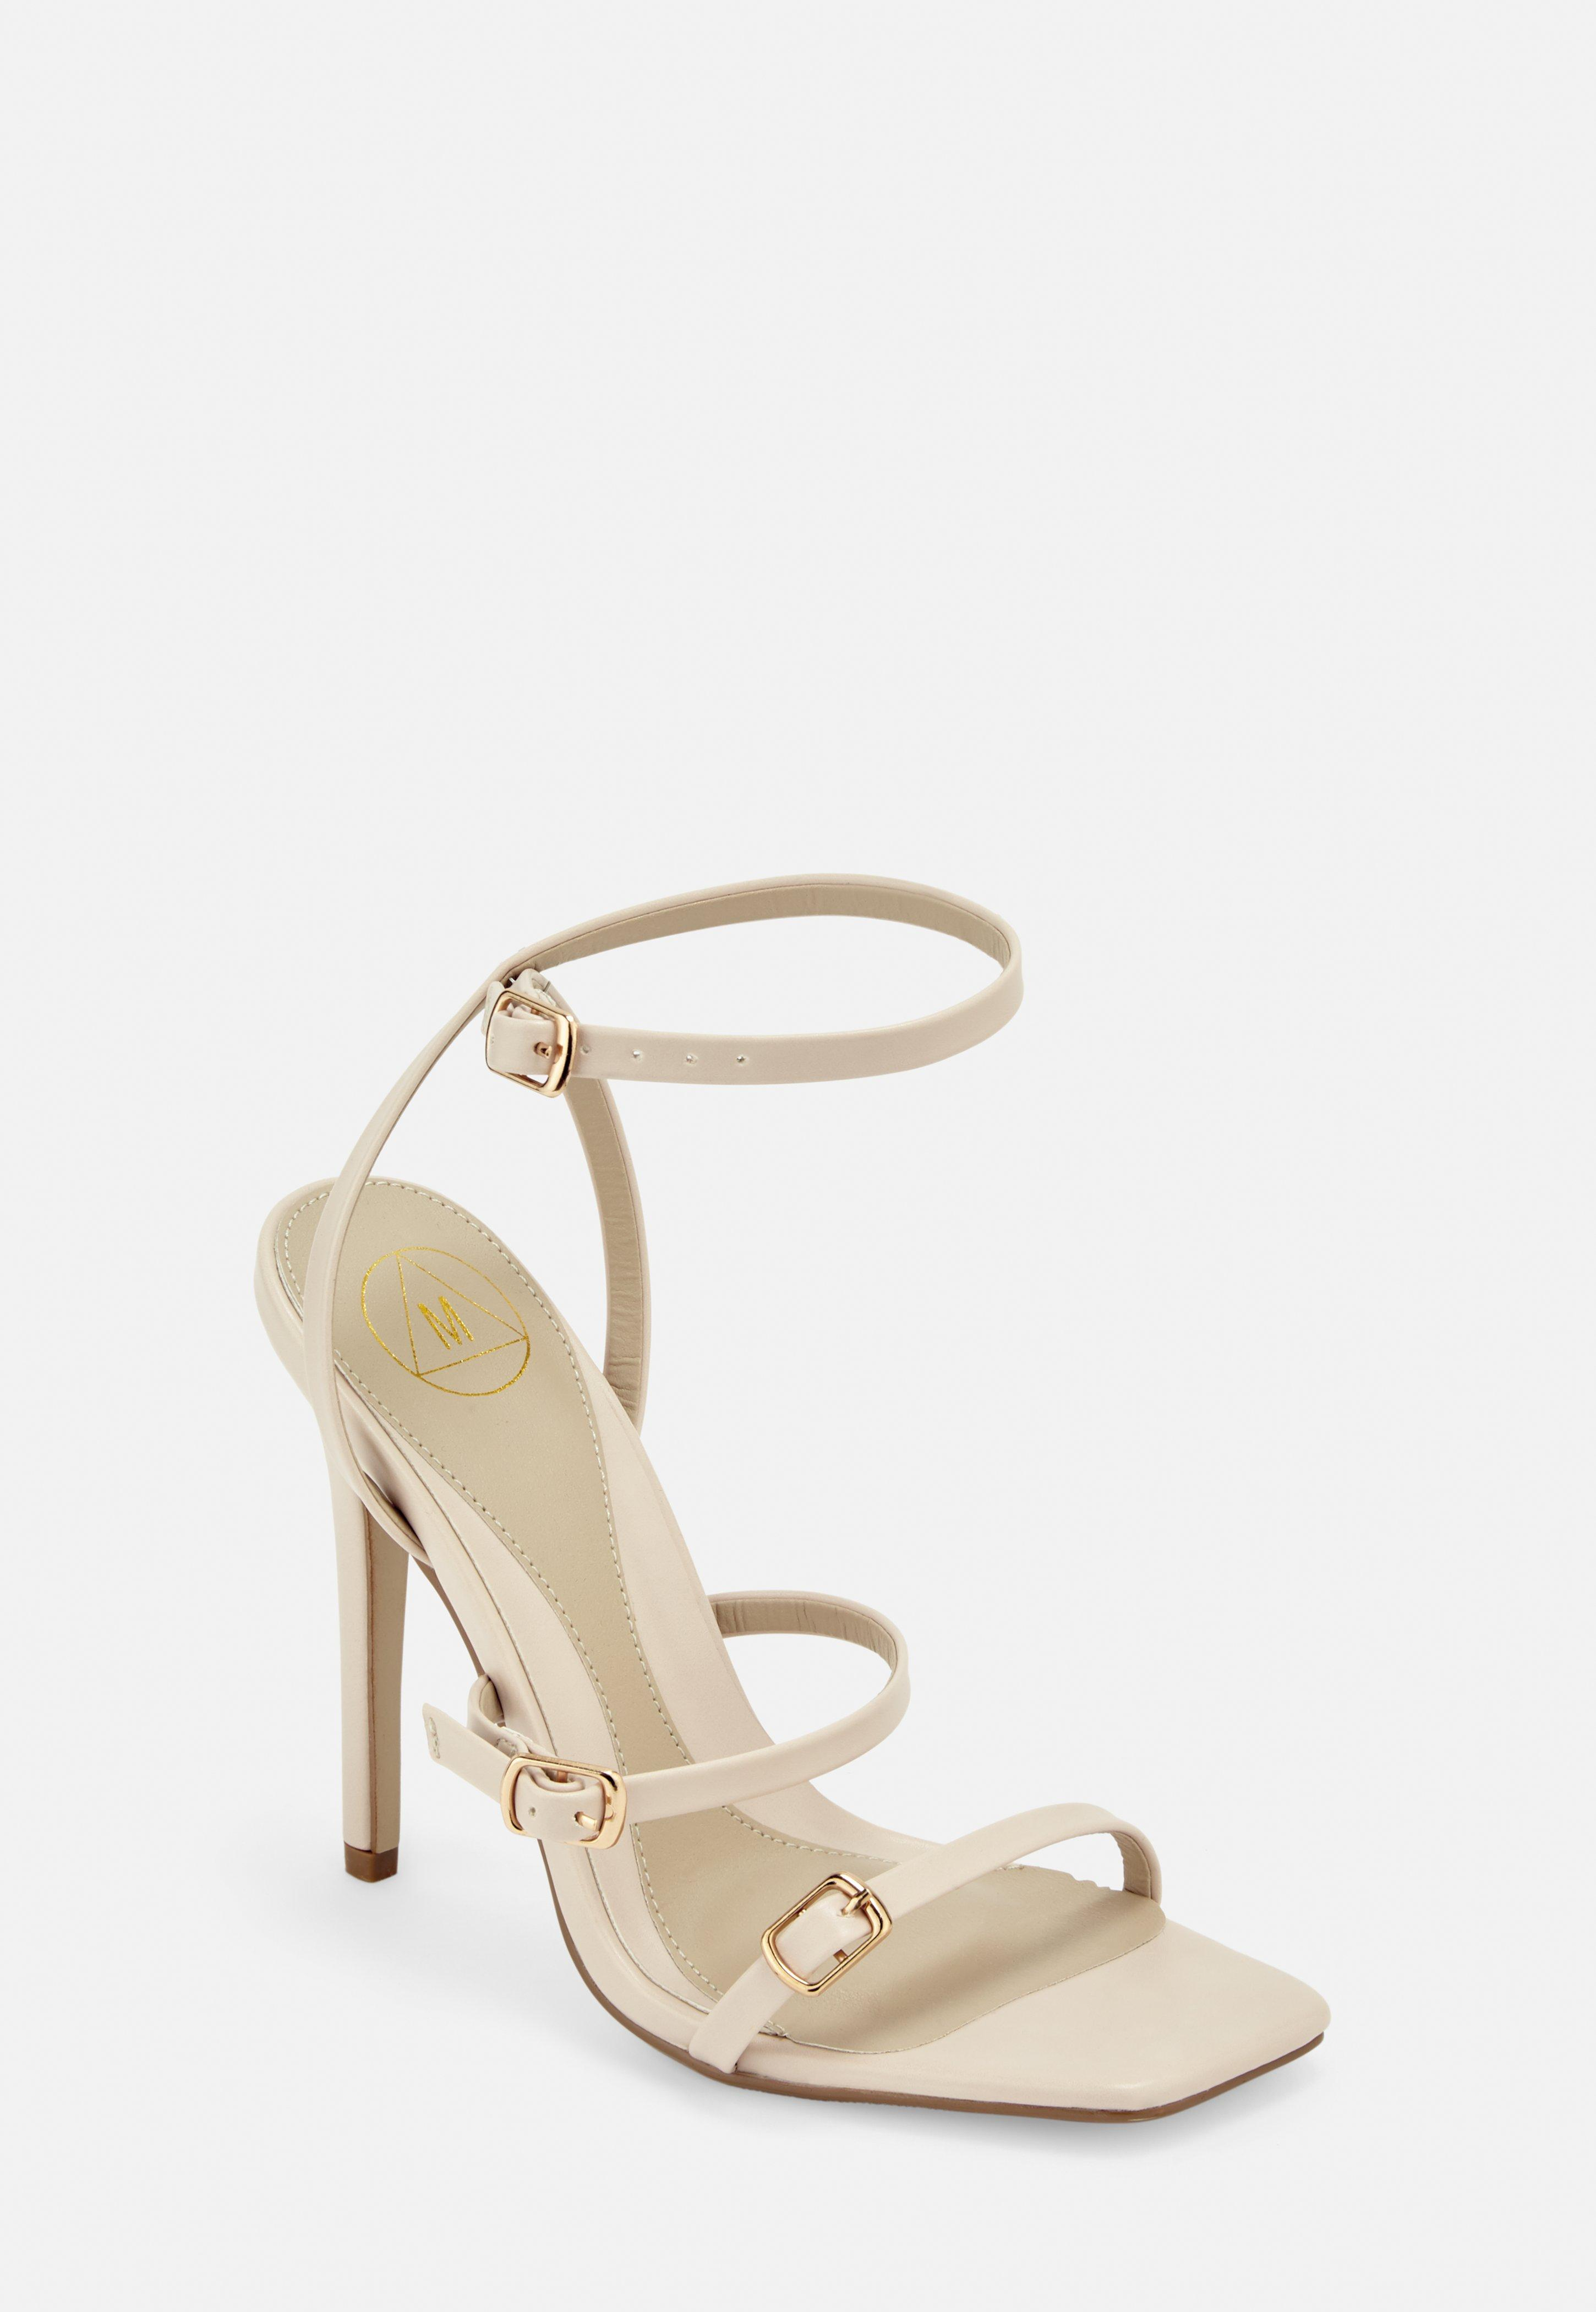 2d9c2d410d5c Heeled Sandals | Strappy & Barely There Heels - Missguided